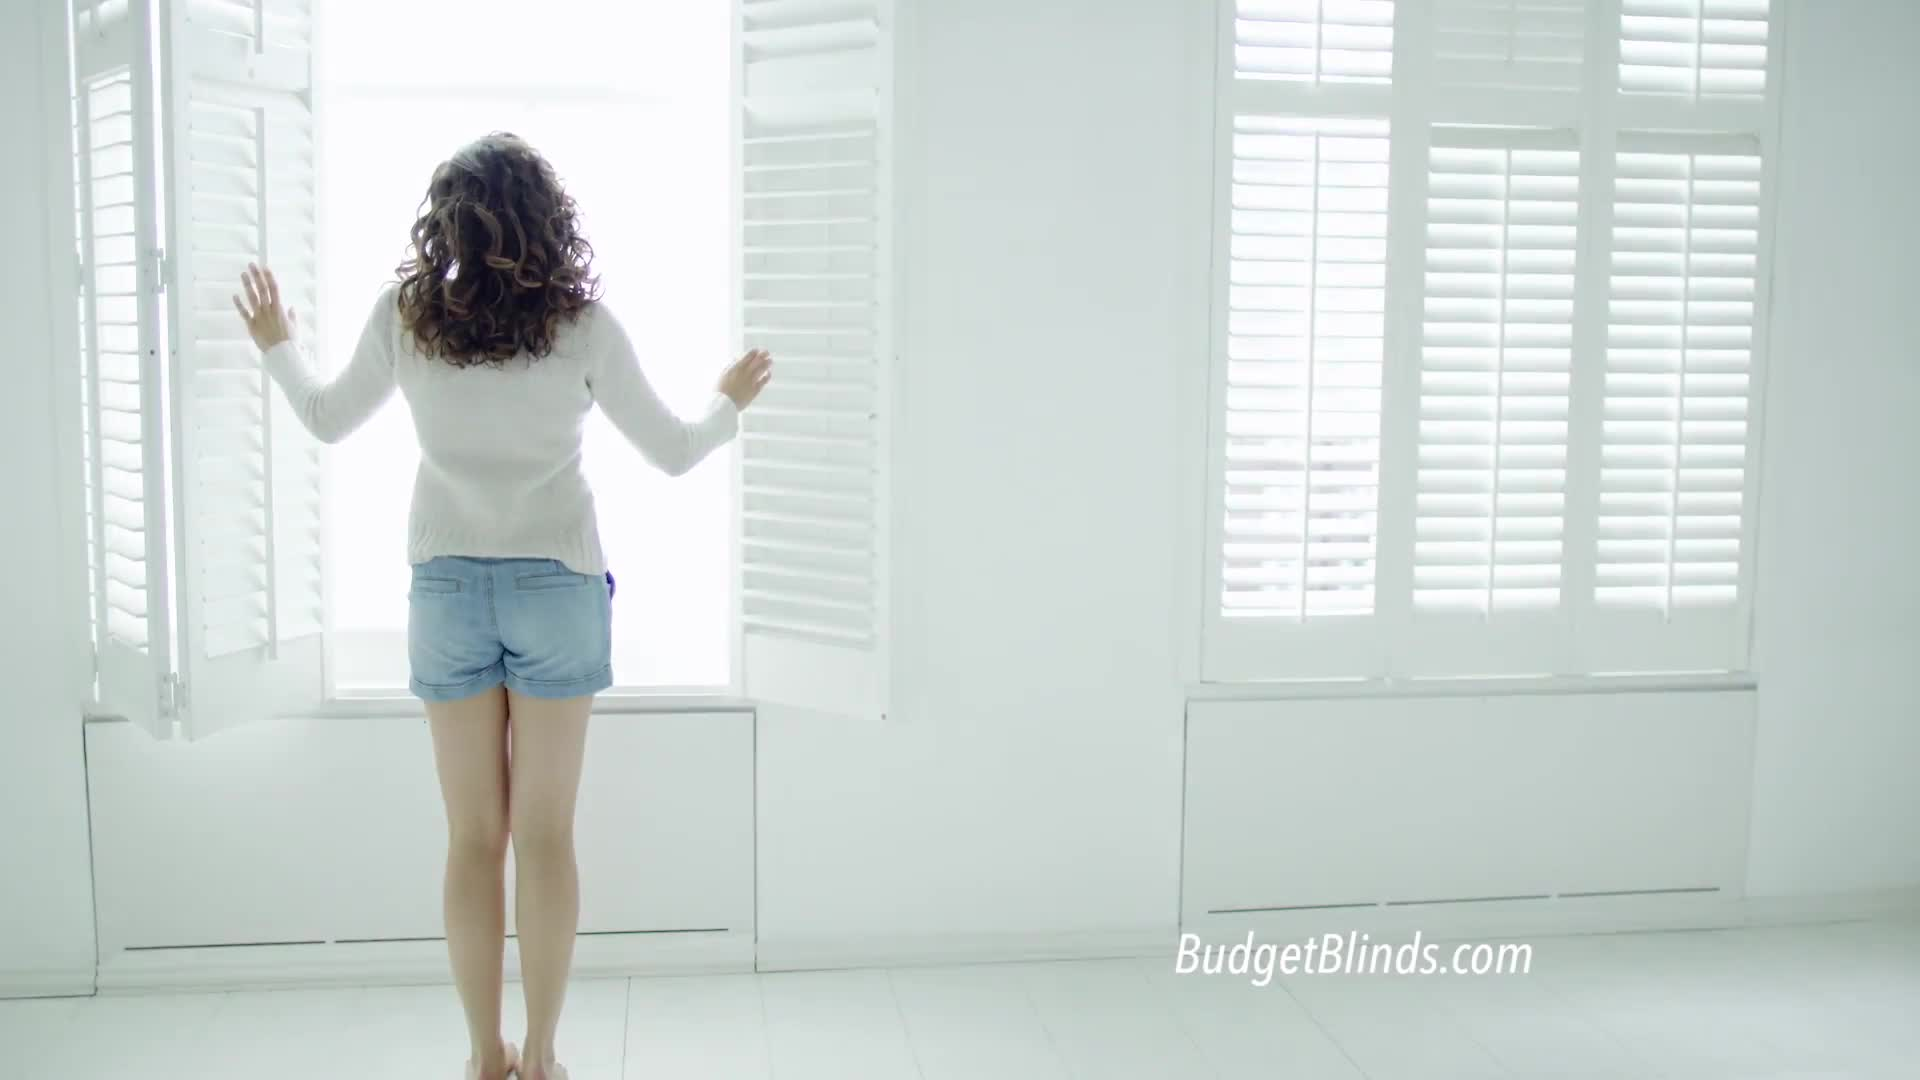 Budget Blinds - Window Shade & Blind Stores - 587-801-3294